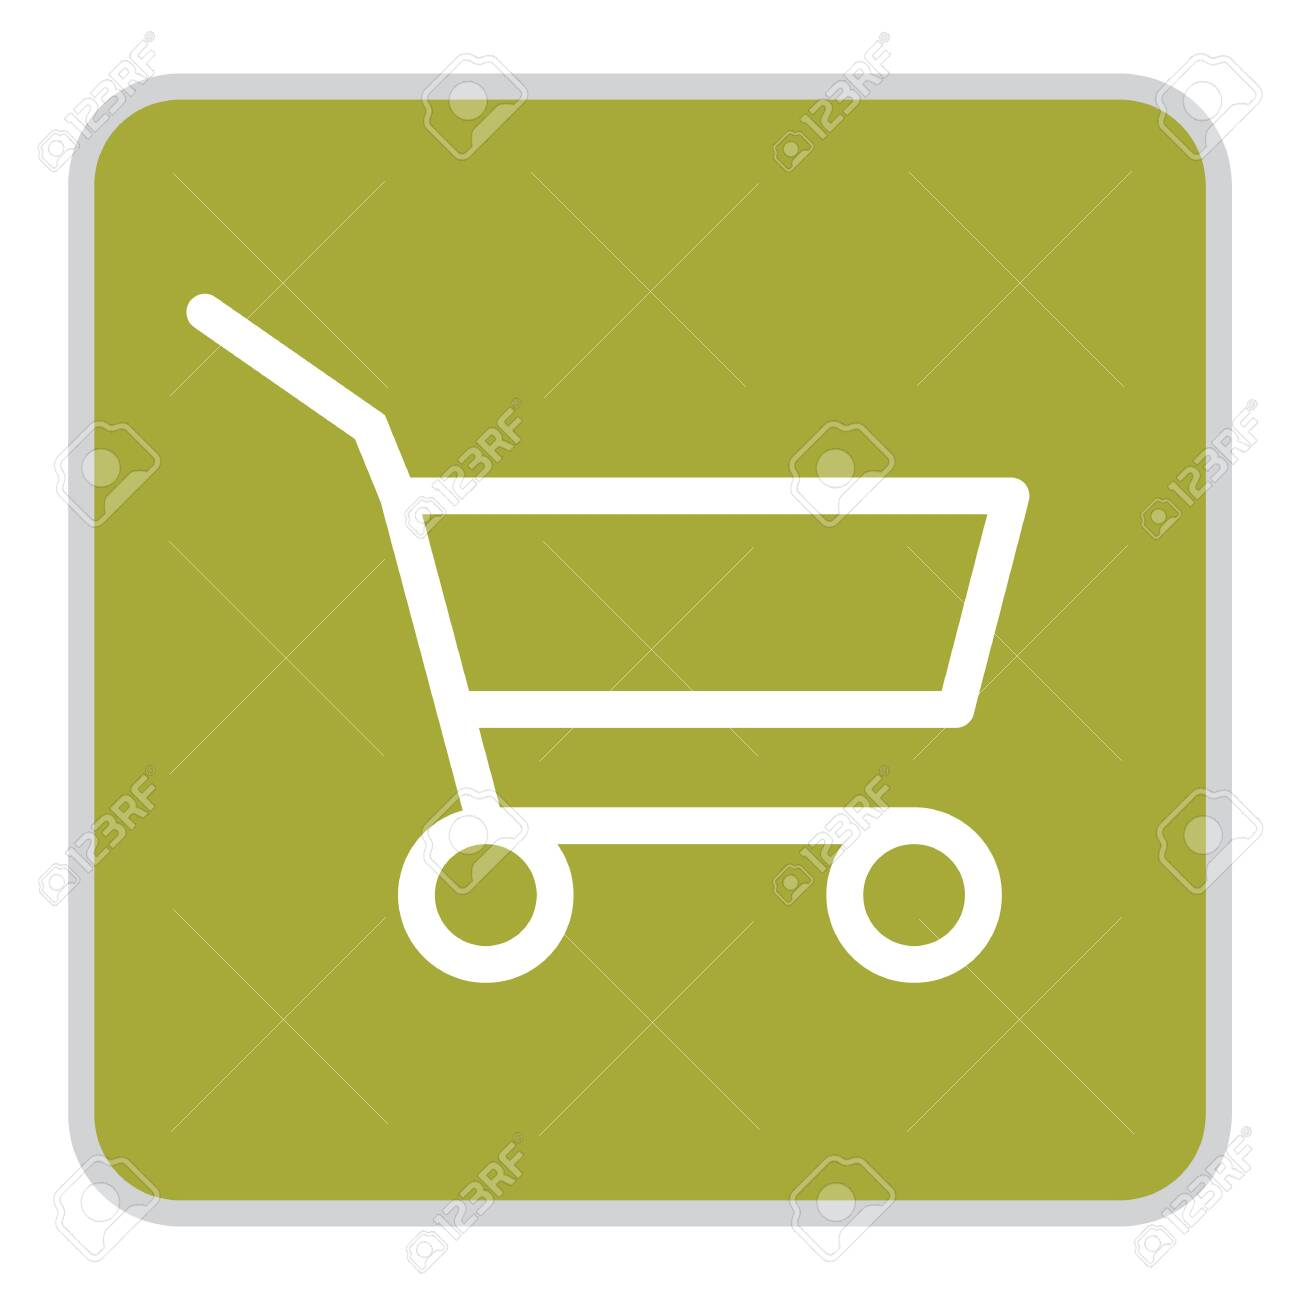 Grocery Supermarket Trolley Cart Vector Icon, EmptyShopping Cartfor Buyer,Consumerism Concept Sign, Fewer Shopping Cause Consumer Behavior Online Shopping Effect,Business Shrink - 140087502